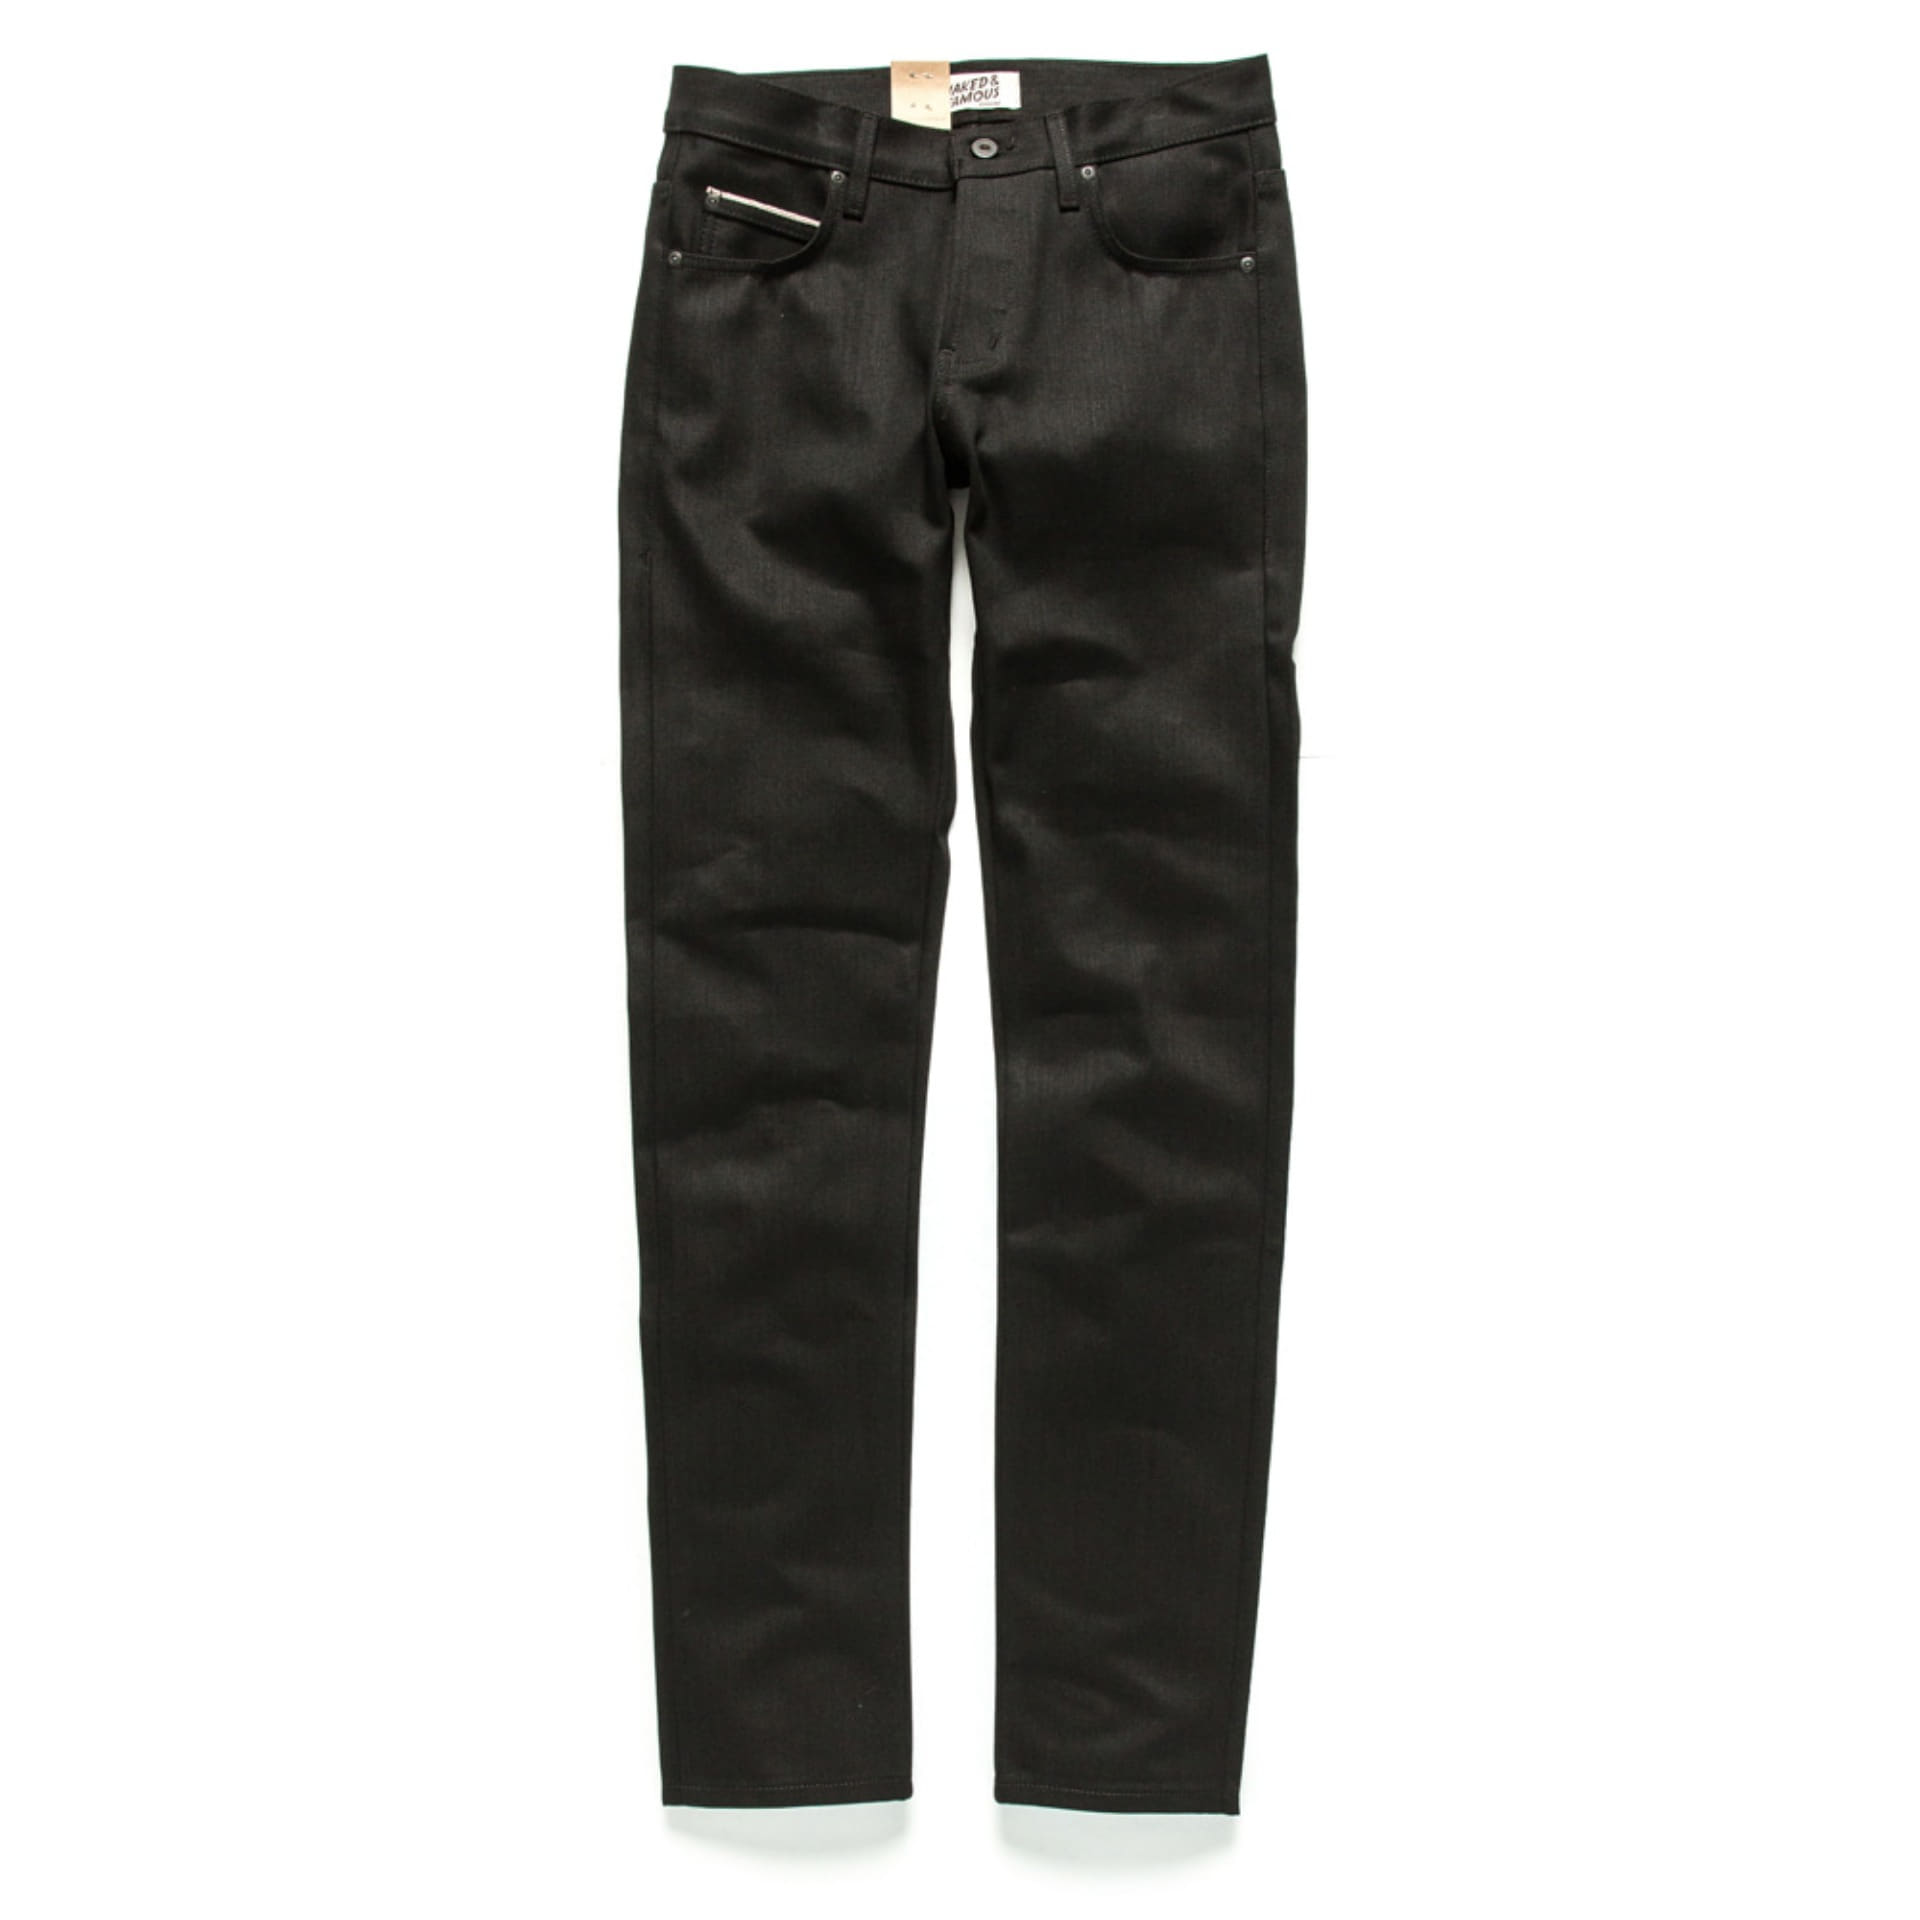 SUPERSKINNYGUY SOLID BLACK SELVEDGE